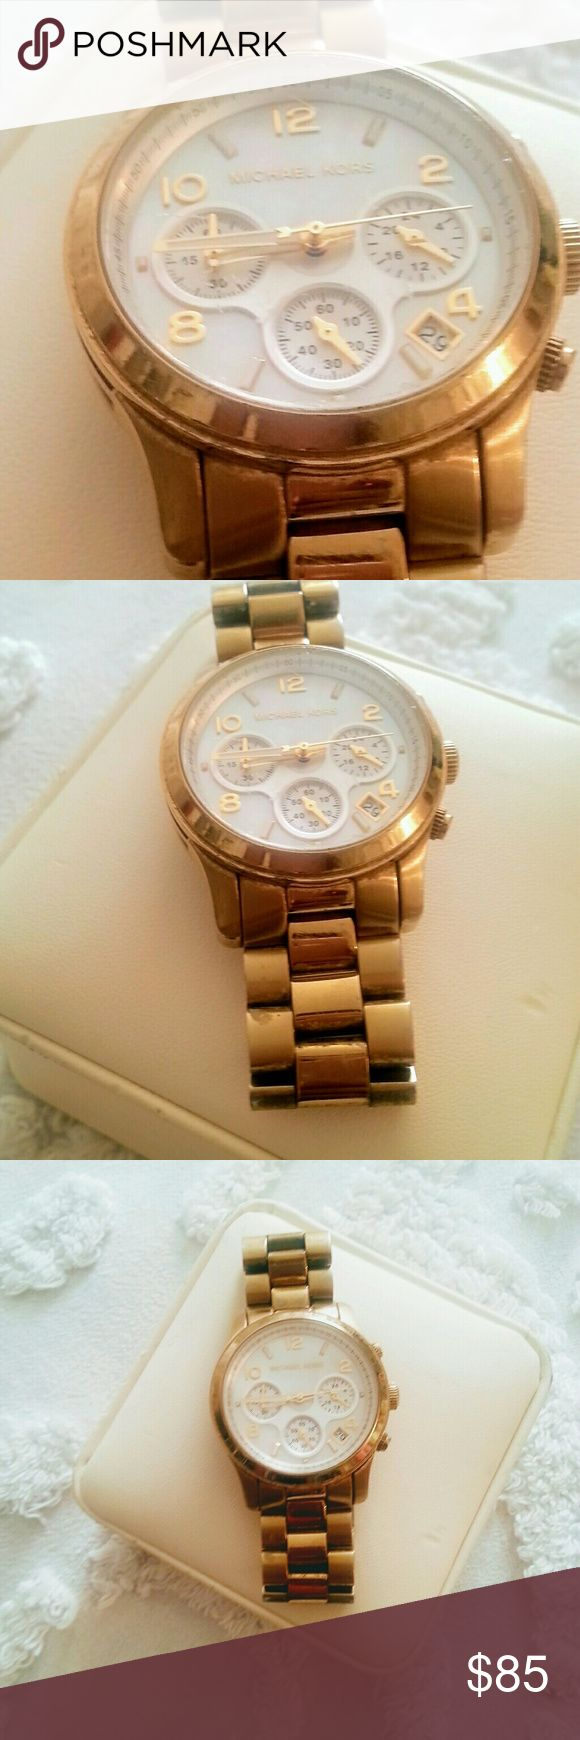 🆕 Michael Kors Steel  Big Face Watch Super cute and Preppy watch in good condition. The gold is starting to fade on parts of the watch and a little dull - Please see last 3 photos. Otherwise still a great watch. Can be worn immediately. Michael Kors Accessories Watches